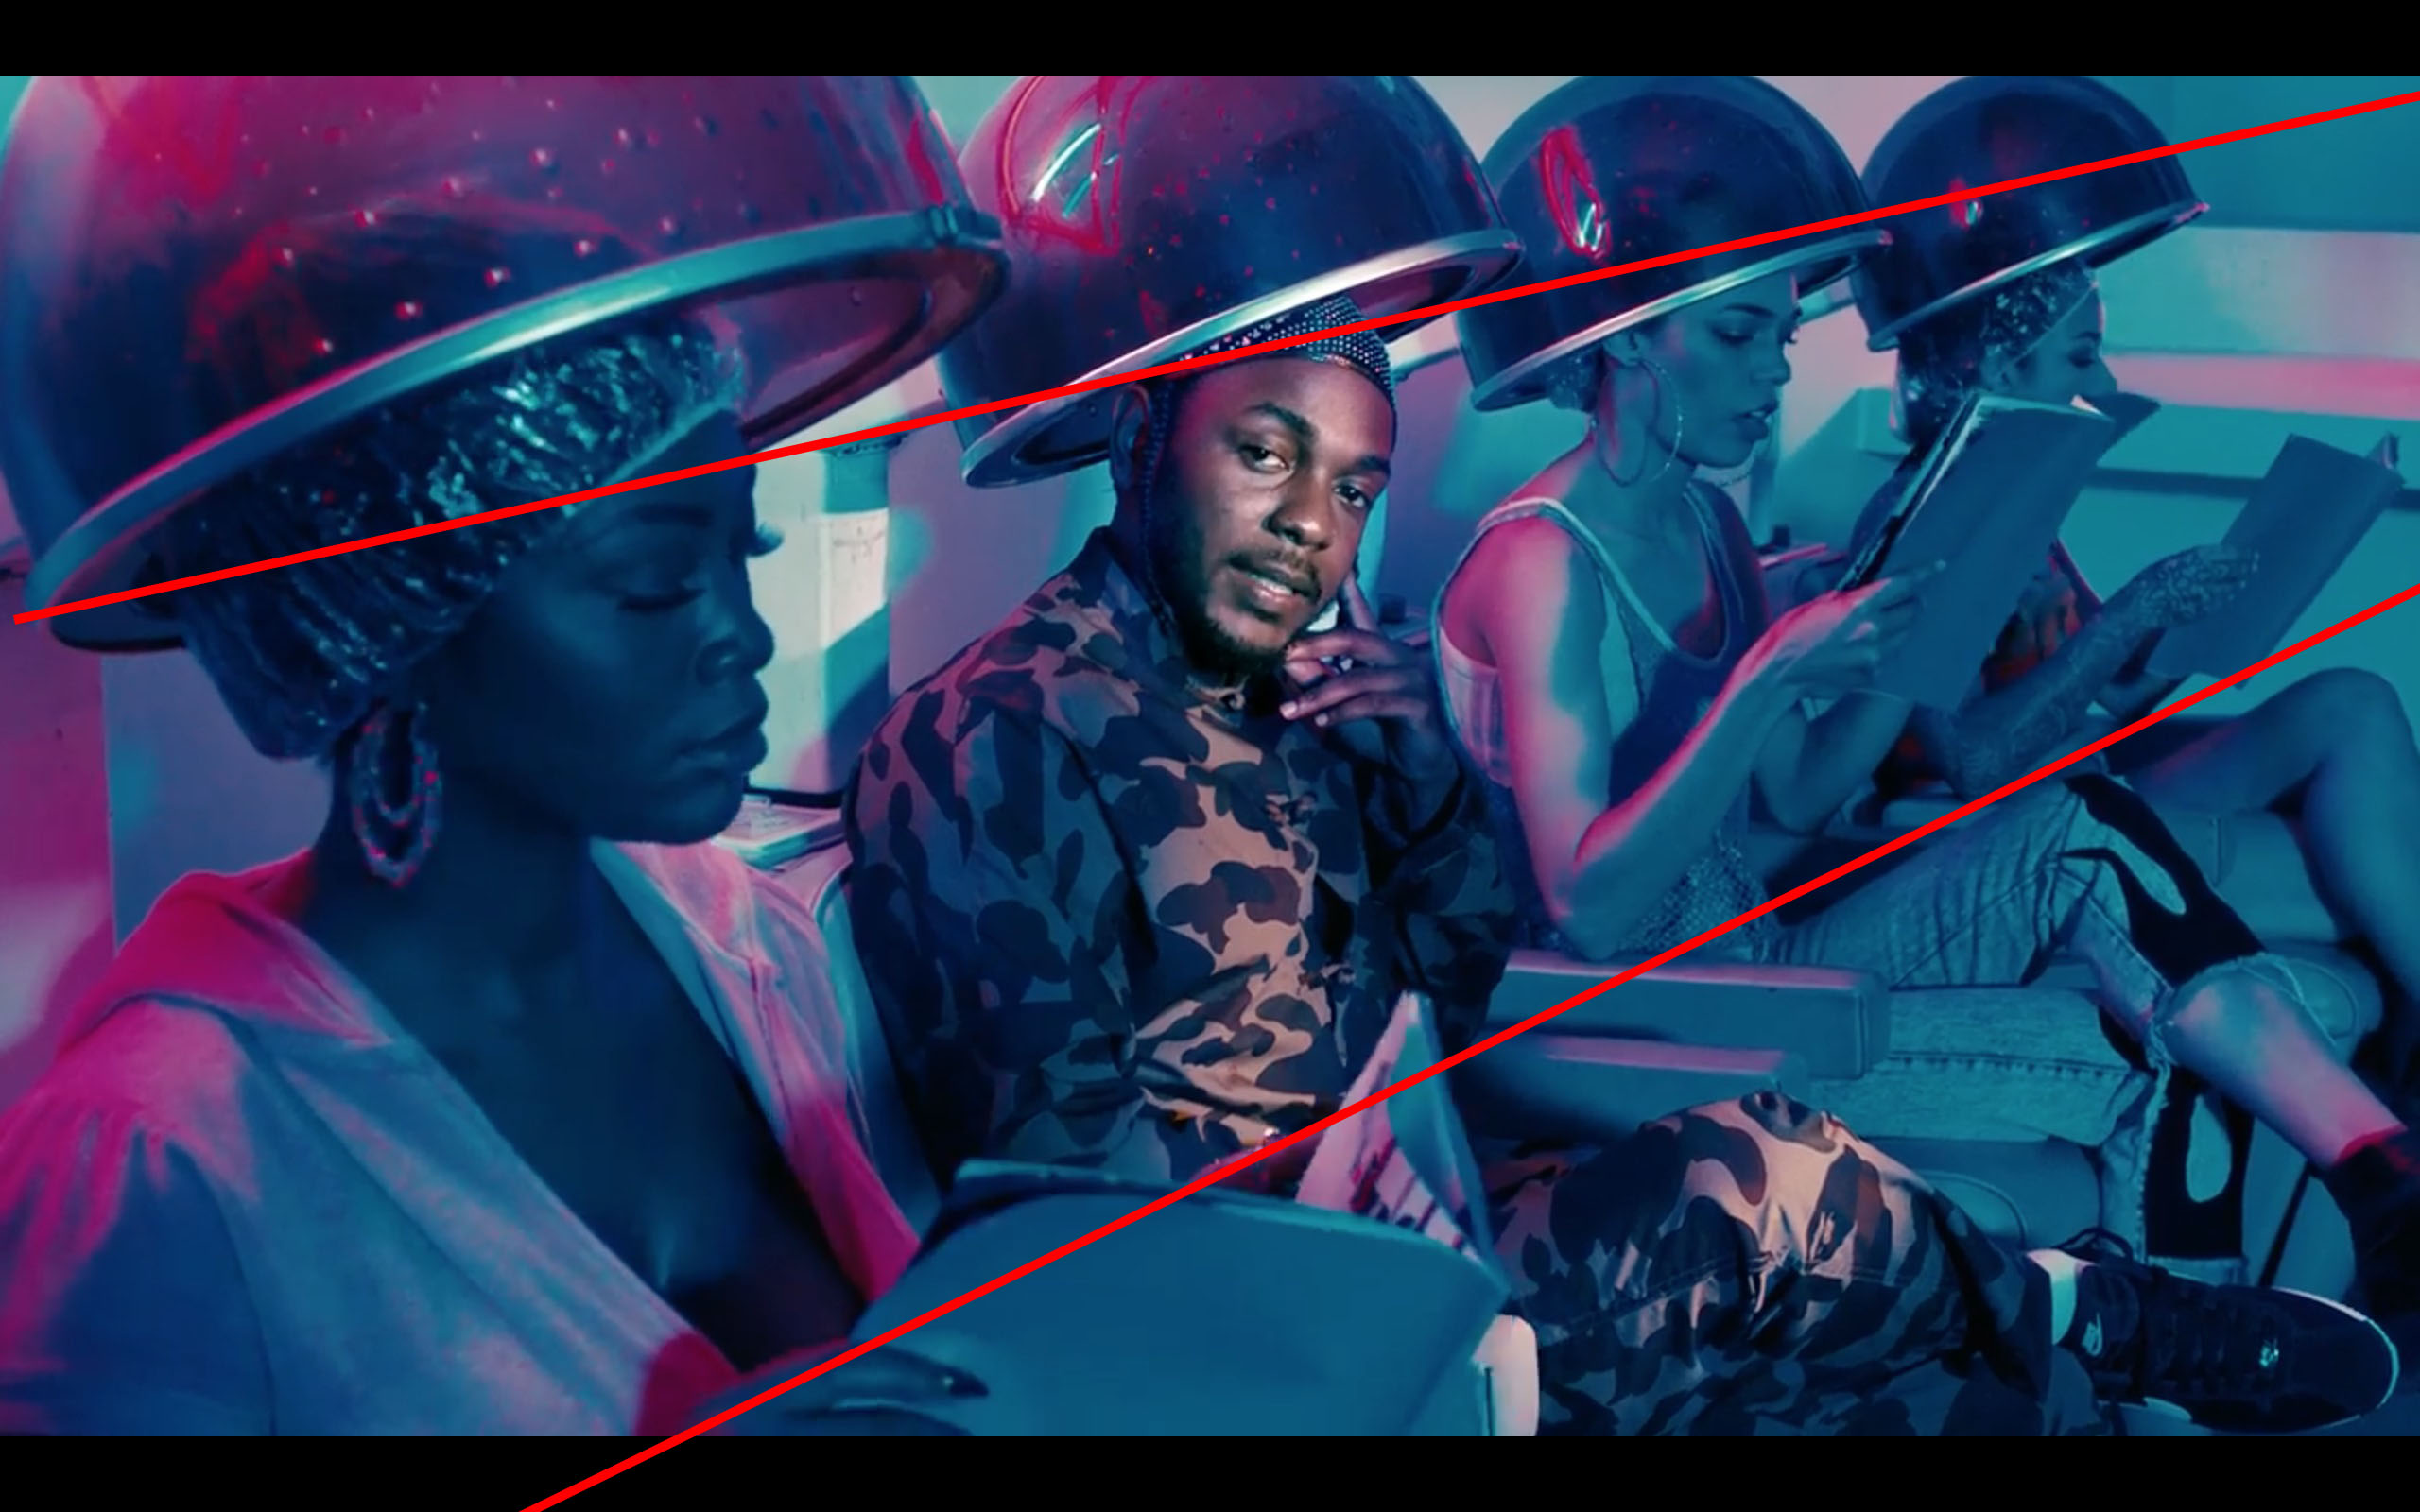 humble kendrick lamar composition screenshot7metropolis movie-2.jpg